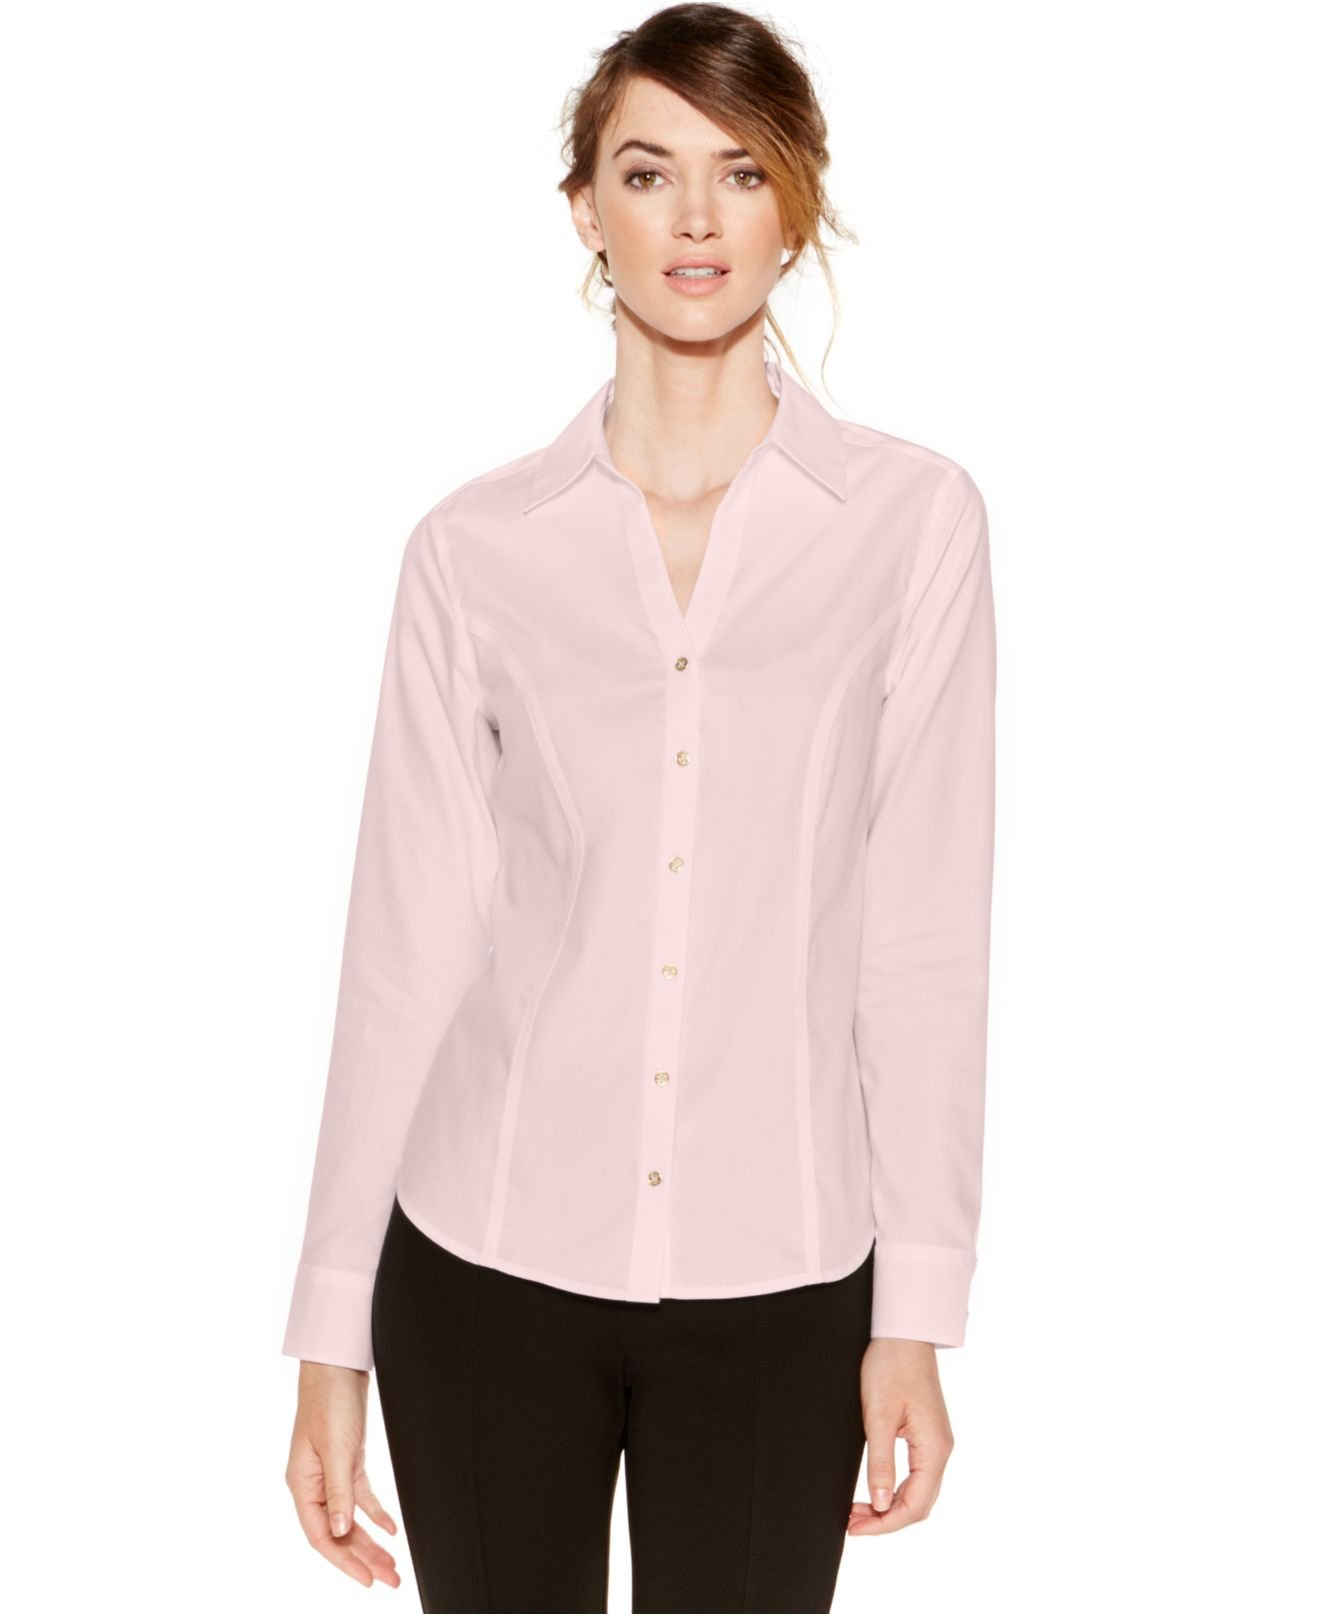 Calvin klein non iron button down top in pink light pink for Pastel pink button down shirt